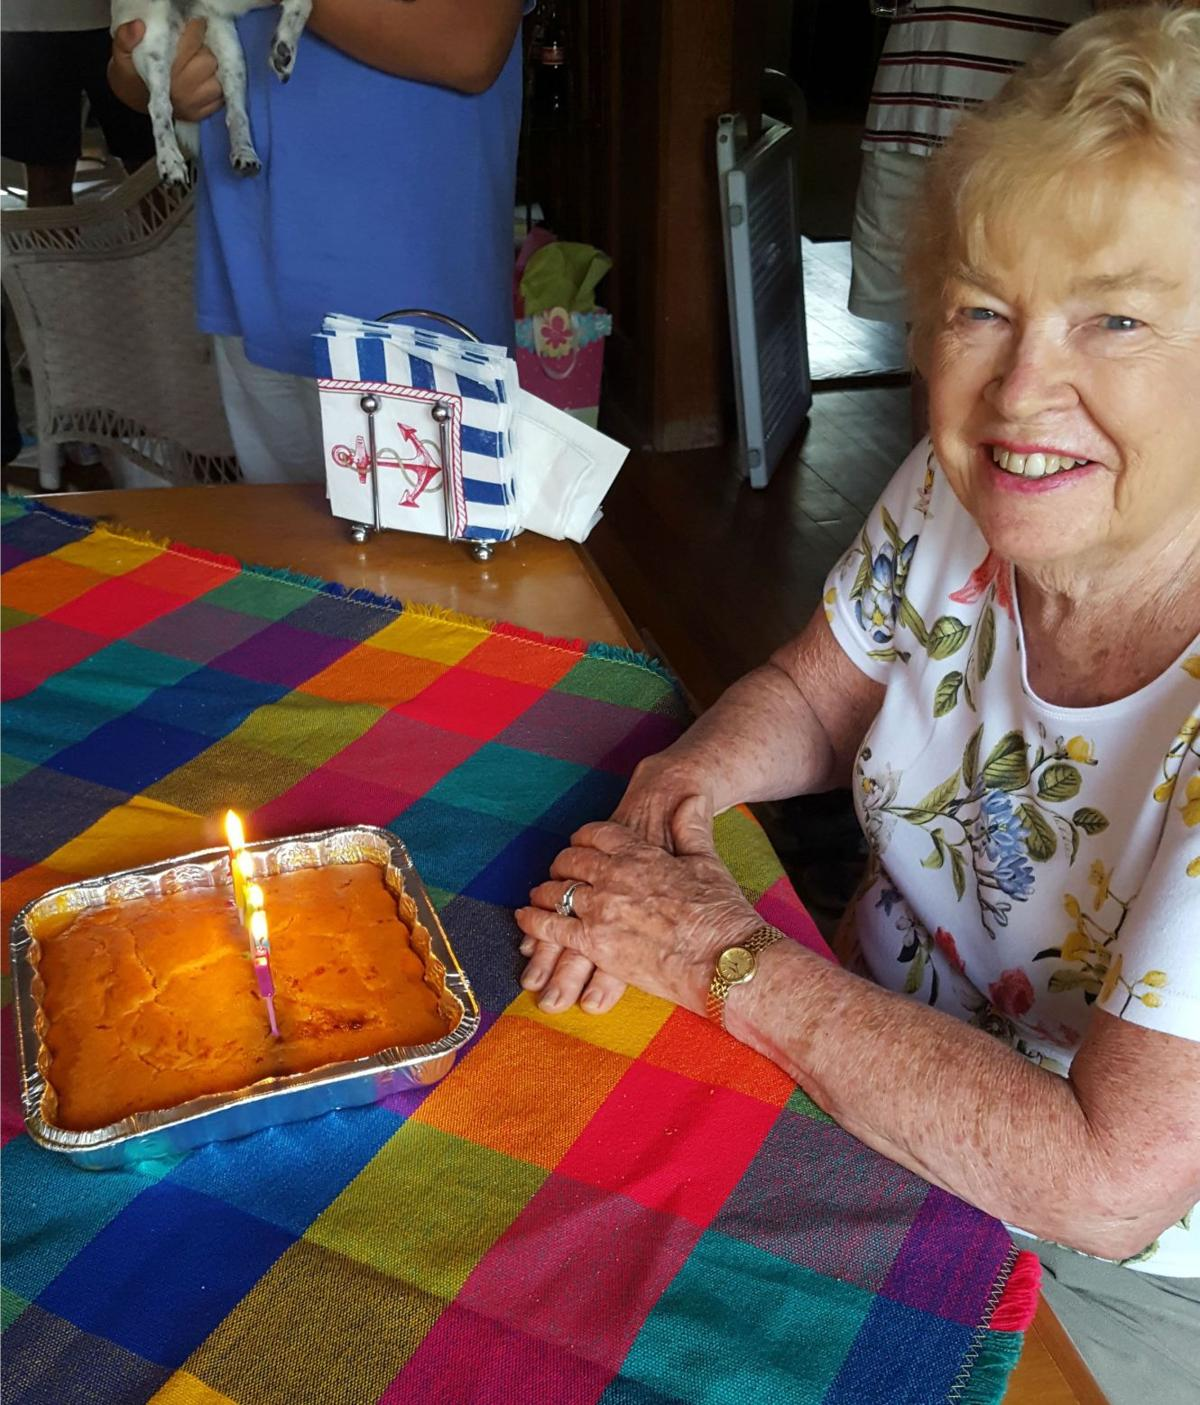 Star of 1967 Post-Courier Cookbook ad has her cake, eats it too